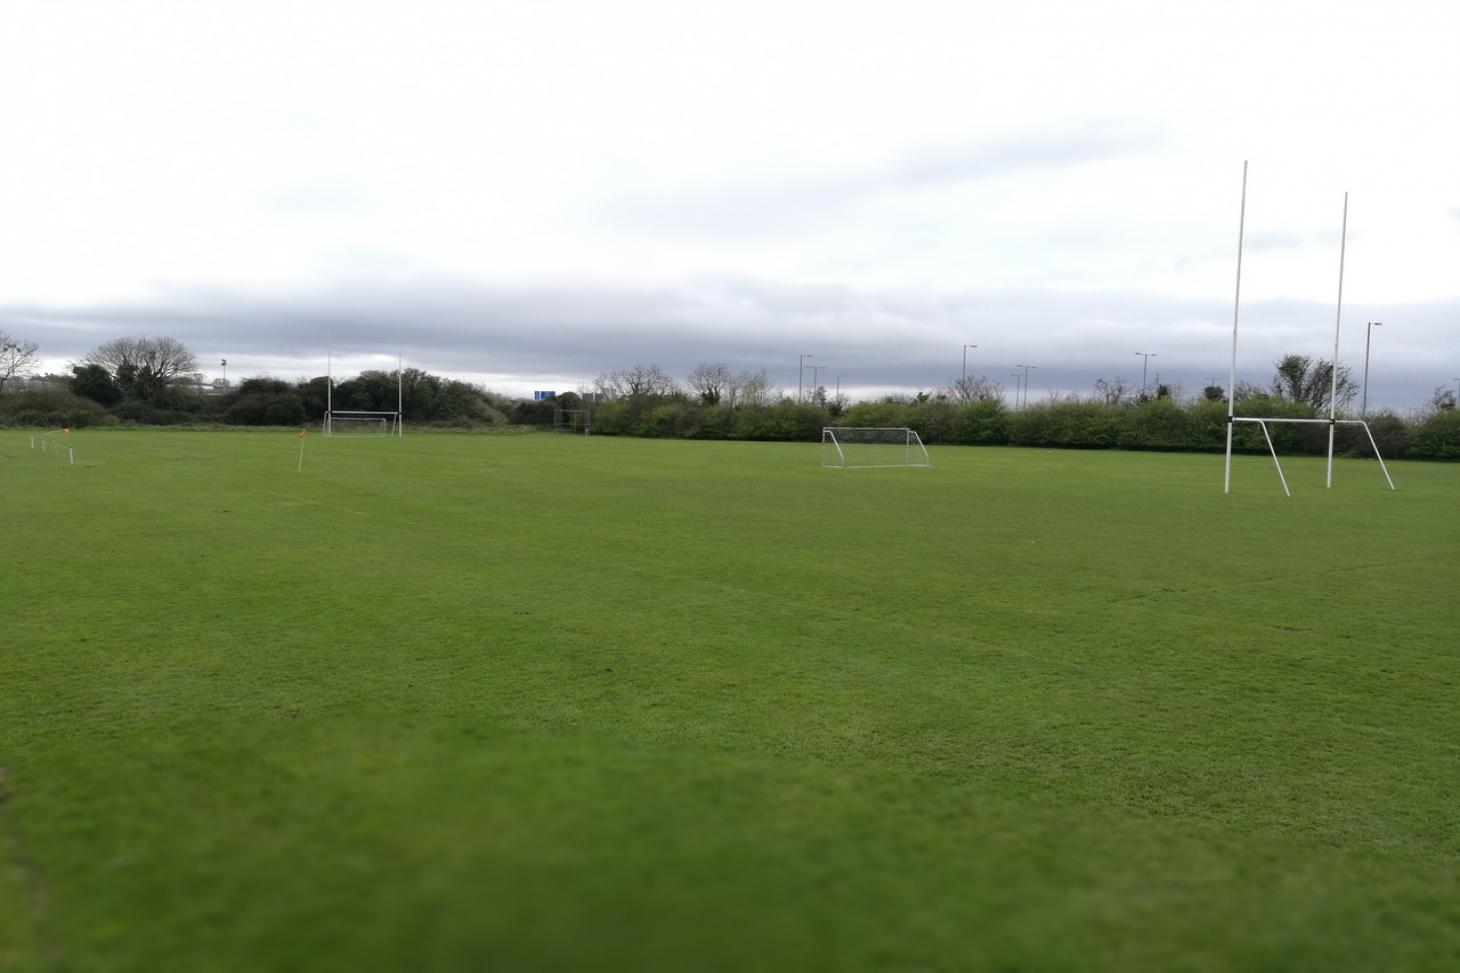 Royal College of Surgeons Sports Grounds 7 a side   Grass football pitch